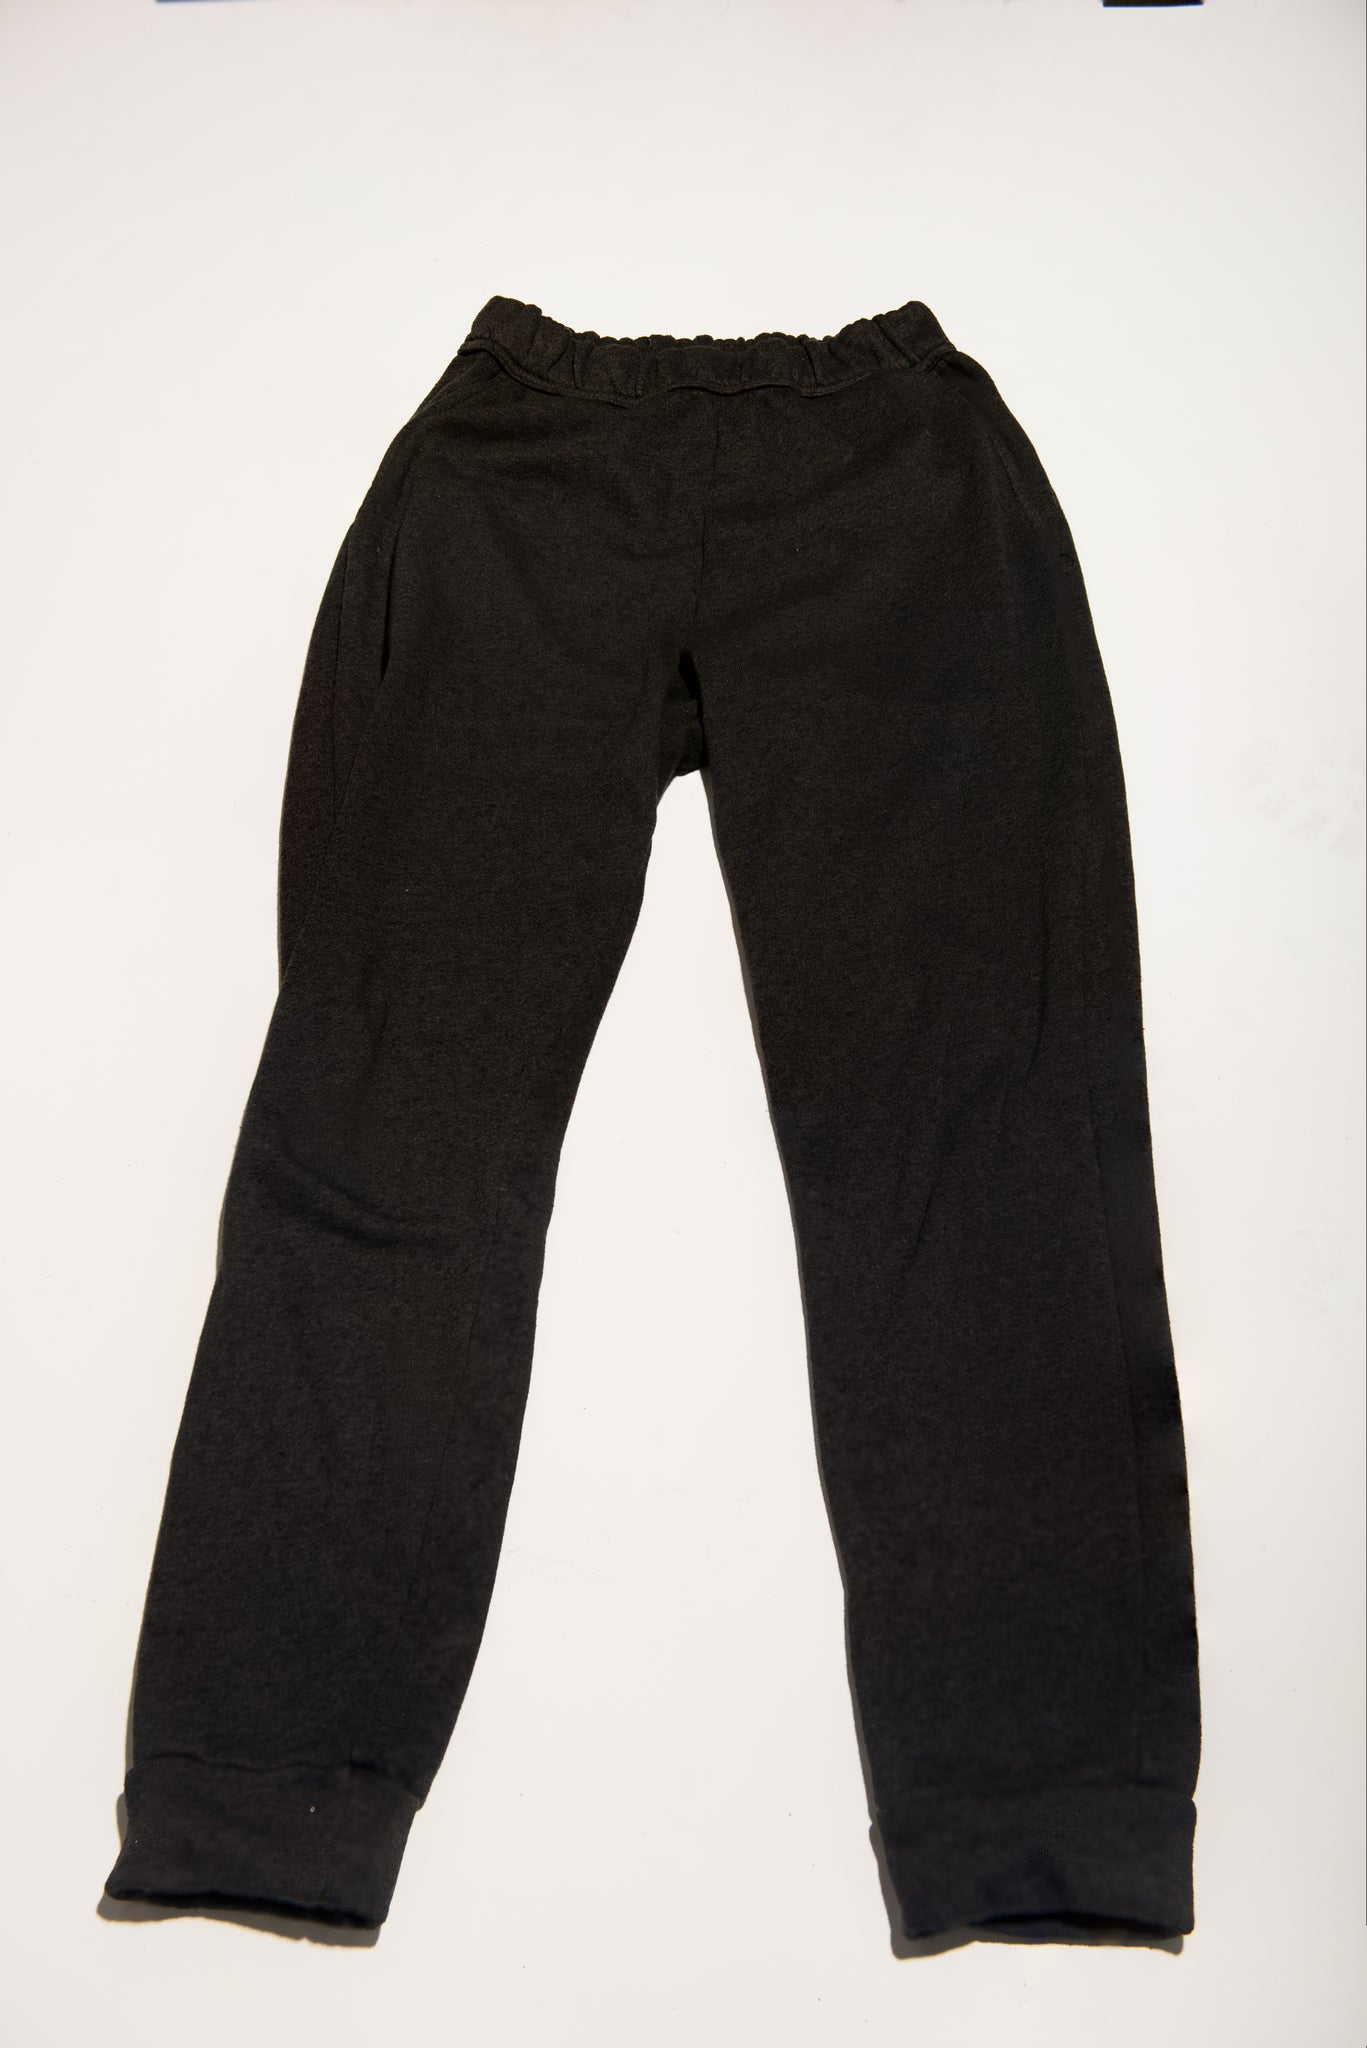 Women's French Terry Cuff Bottom Back Pocket Sweatpant - Black